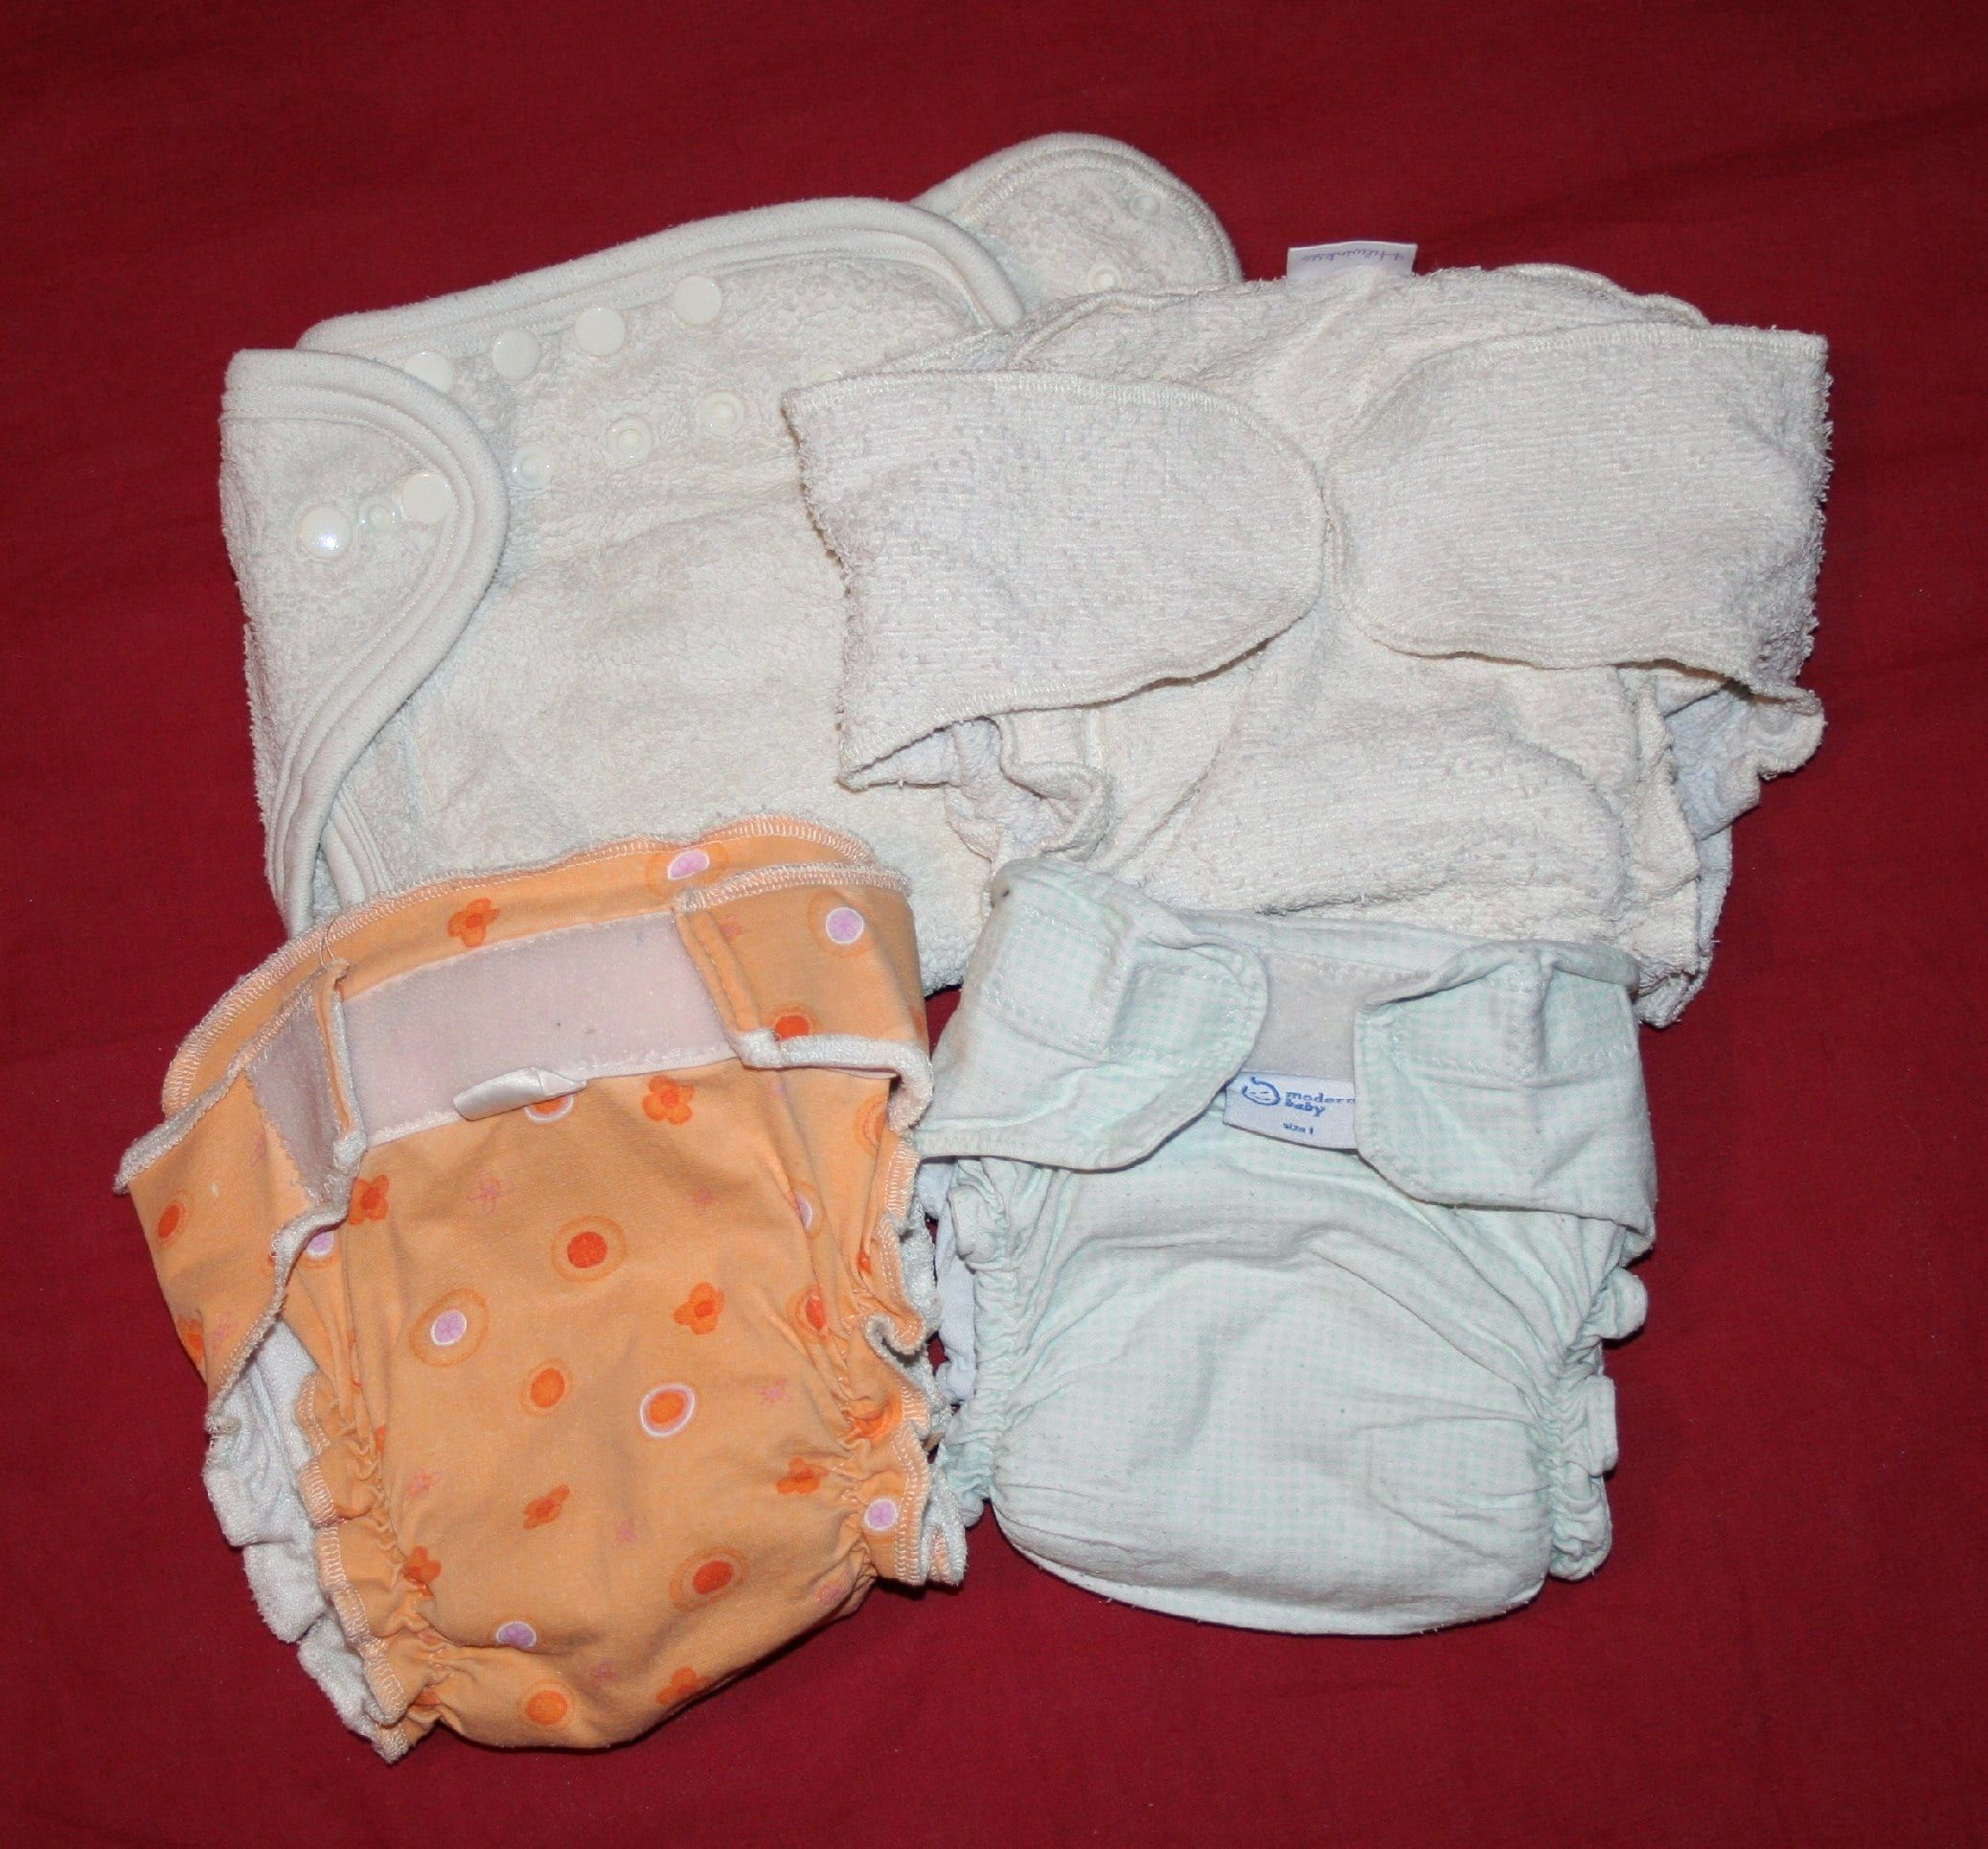 how to strip cloth diapers with dawn dish soap